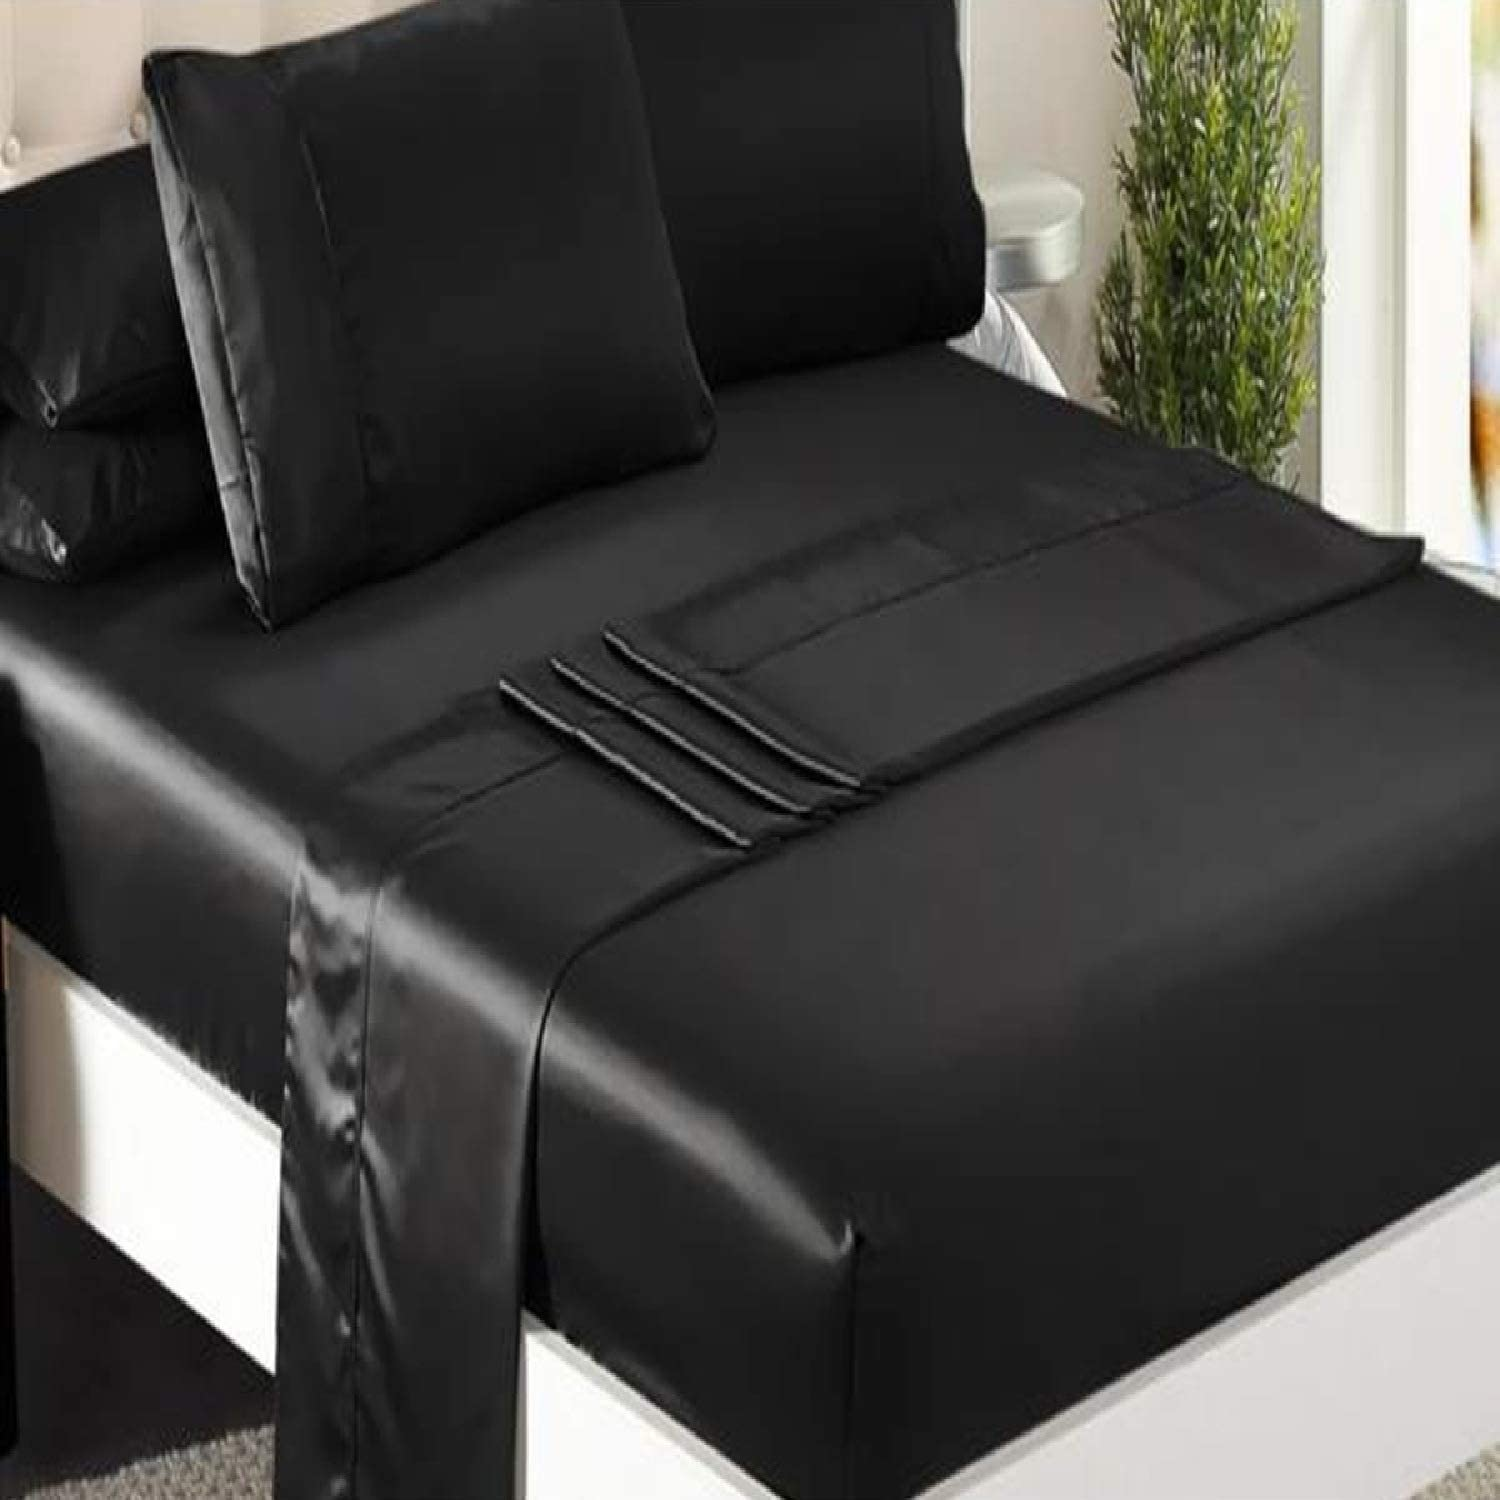 Niagara Sleep Solution Queen Bed Sheet Set 4 Pieces Black Silky Smooth Bridal Satin Deep Pocket Fitted, Flat, 2 Pillow Cases Wrinkle Stain, Fade Resistant (Black Satin, Queen)